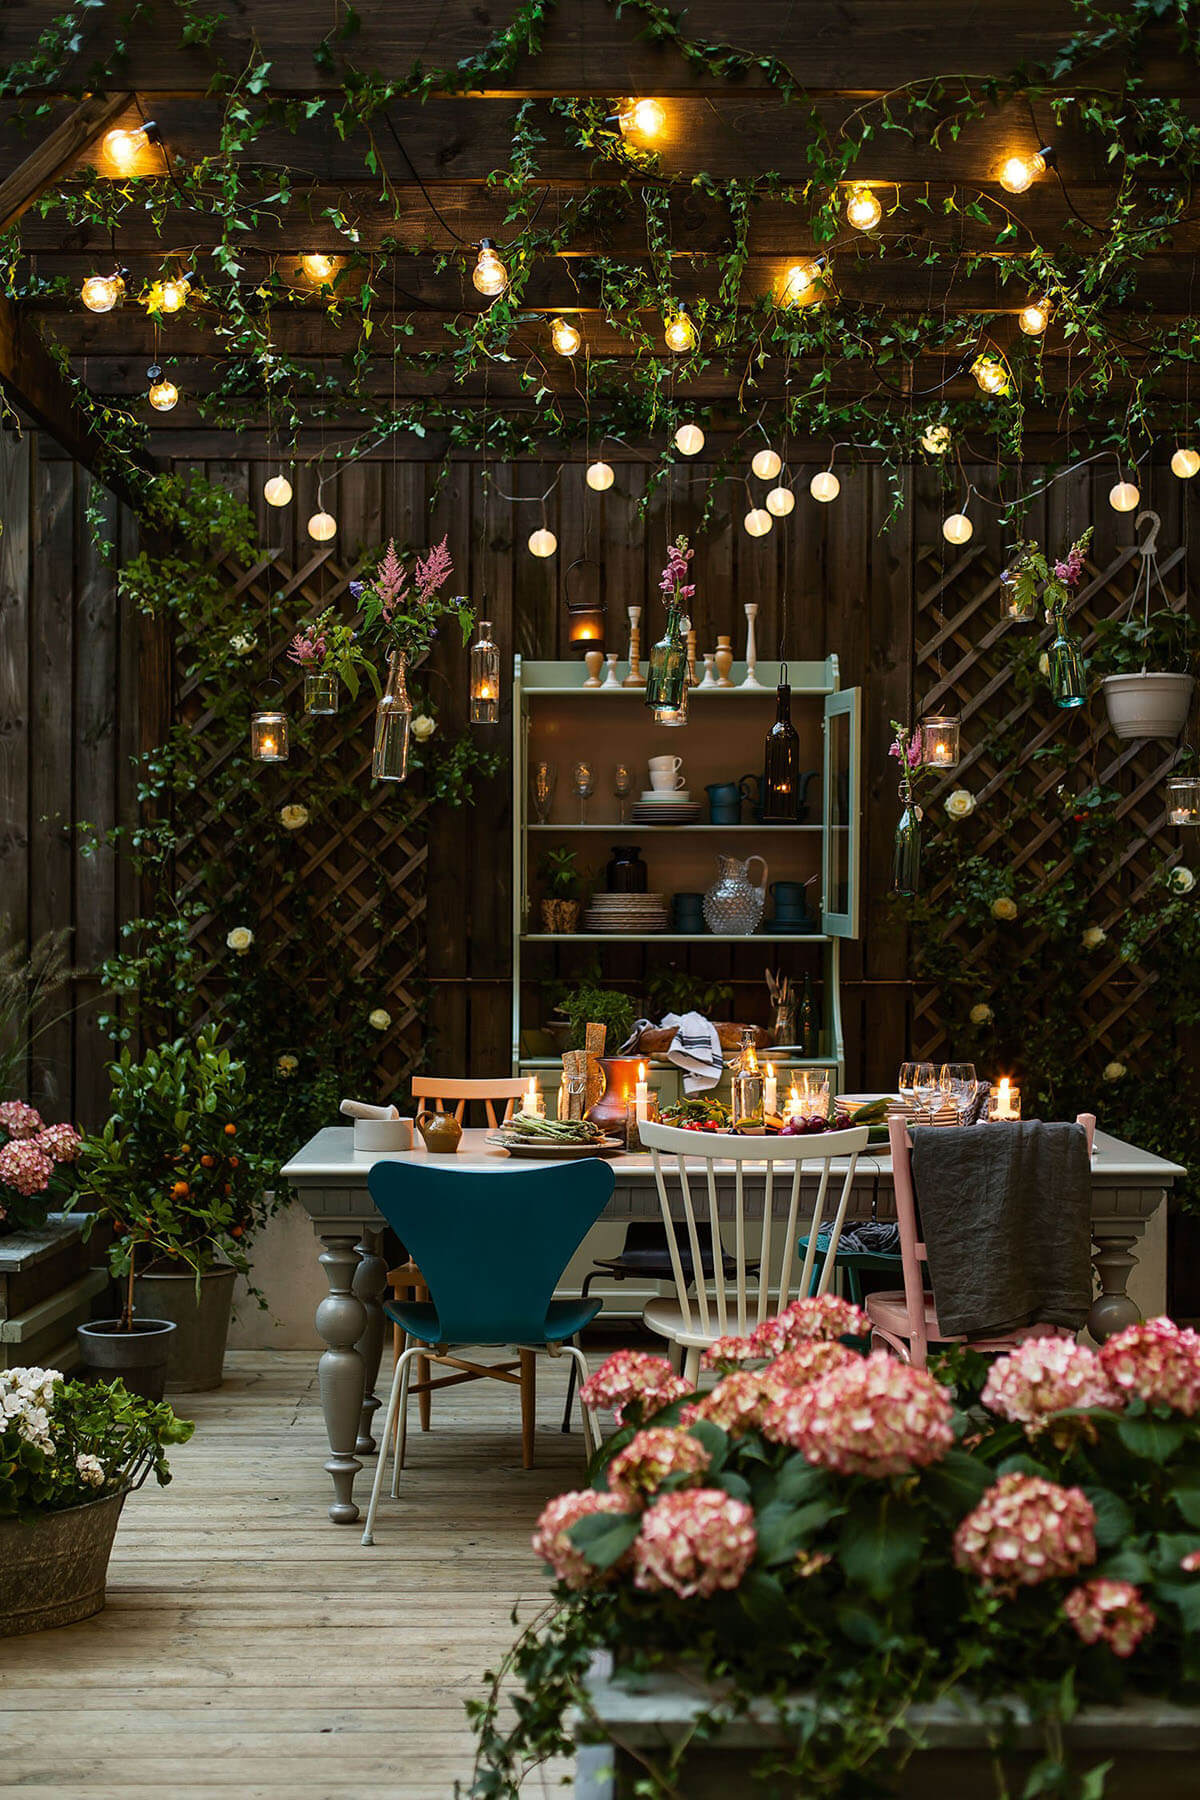 27 Best Backyard Lighting Ideas and Designs for 2018 Garden Lighting Ideas Pictures on garden gifts ideas, outdoor party lights, bathroom ideas, garden placement ideas, diy garden ideas, floor lamps ideas, garden front yard landscaping ideas, retaining walls ideas, outdoor candle lantern, solar powered garden lights, winter vegetable garden ideas, garden roofing ideas, garden labeling ideas, kitchens ideas, deck lighting tips, small garden ideas, garden design ideas, garden garden ideas, decorative string lights, outdoor rope lights, garden color ideas, garden sinks ideas, outdoor christmas lights, walkway lighting, garden bath ideas, outdoor lighting ideas, garden lights, deck lighting, outdoor accent lighting, landscape design ideas, gardening ideas,